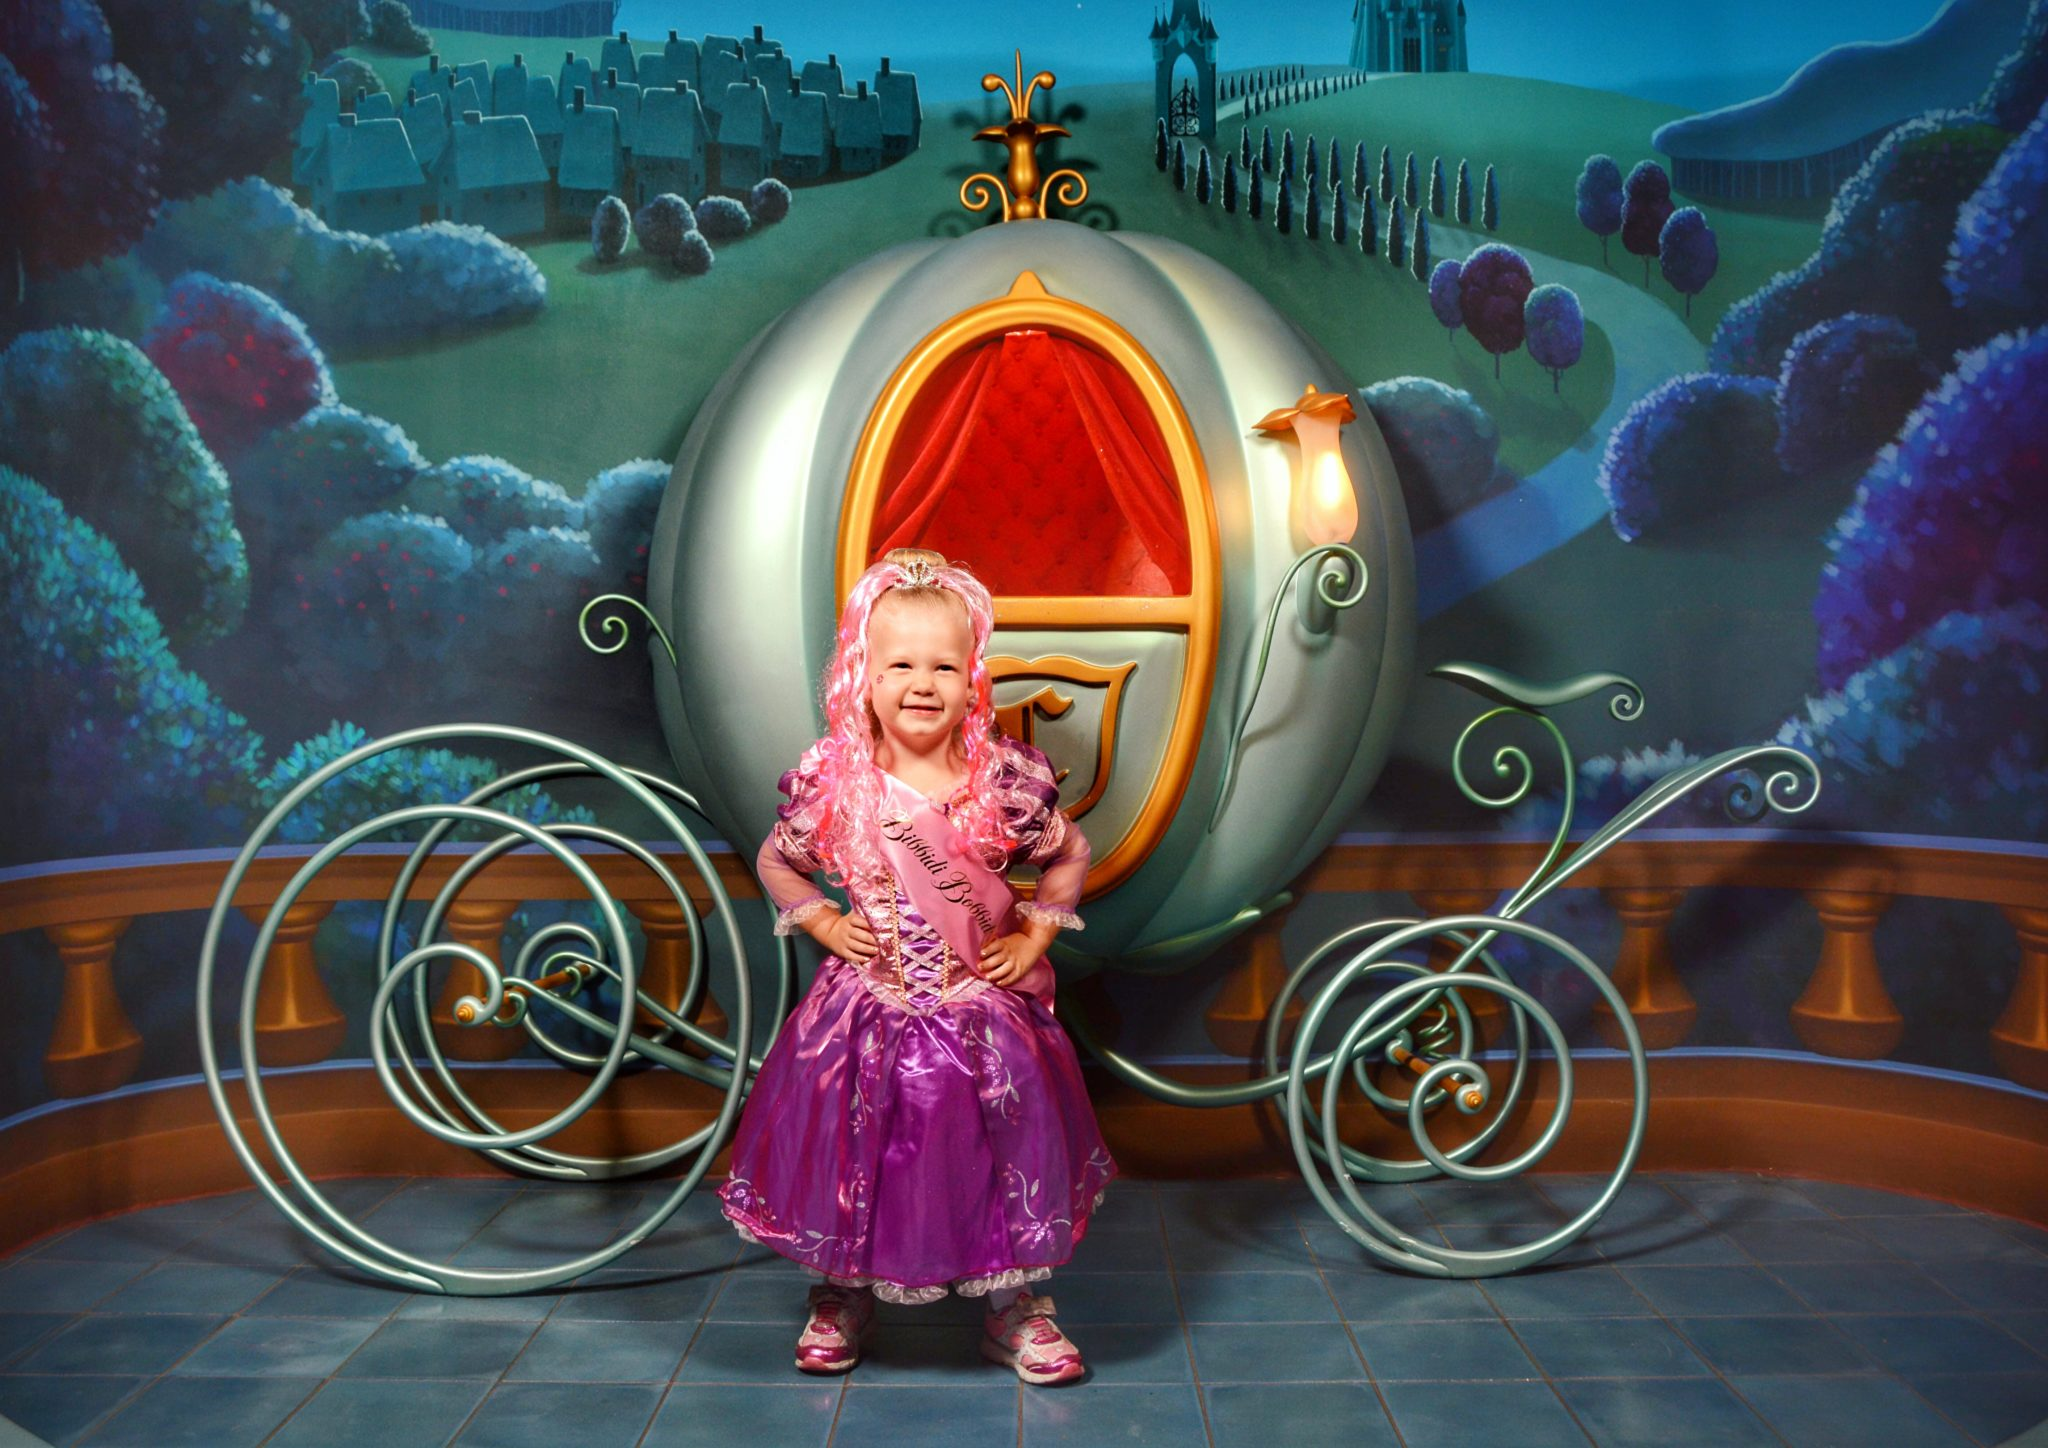 Bring Preschooler to Disney World at Bibbidi Bobbidi Boutique